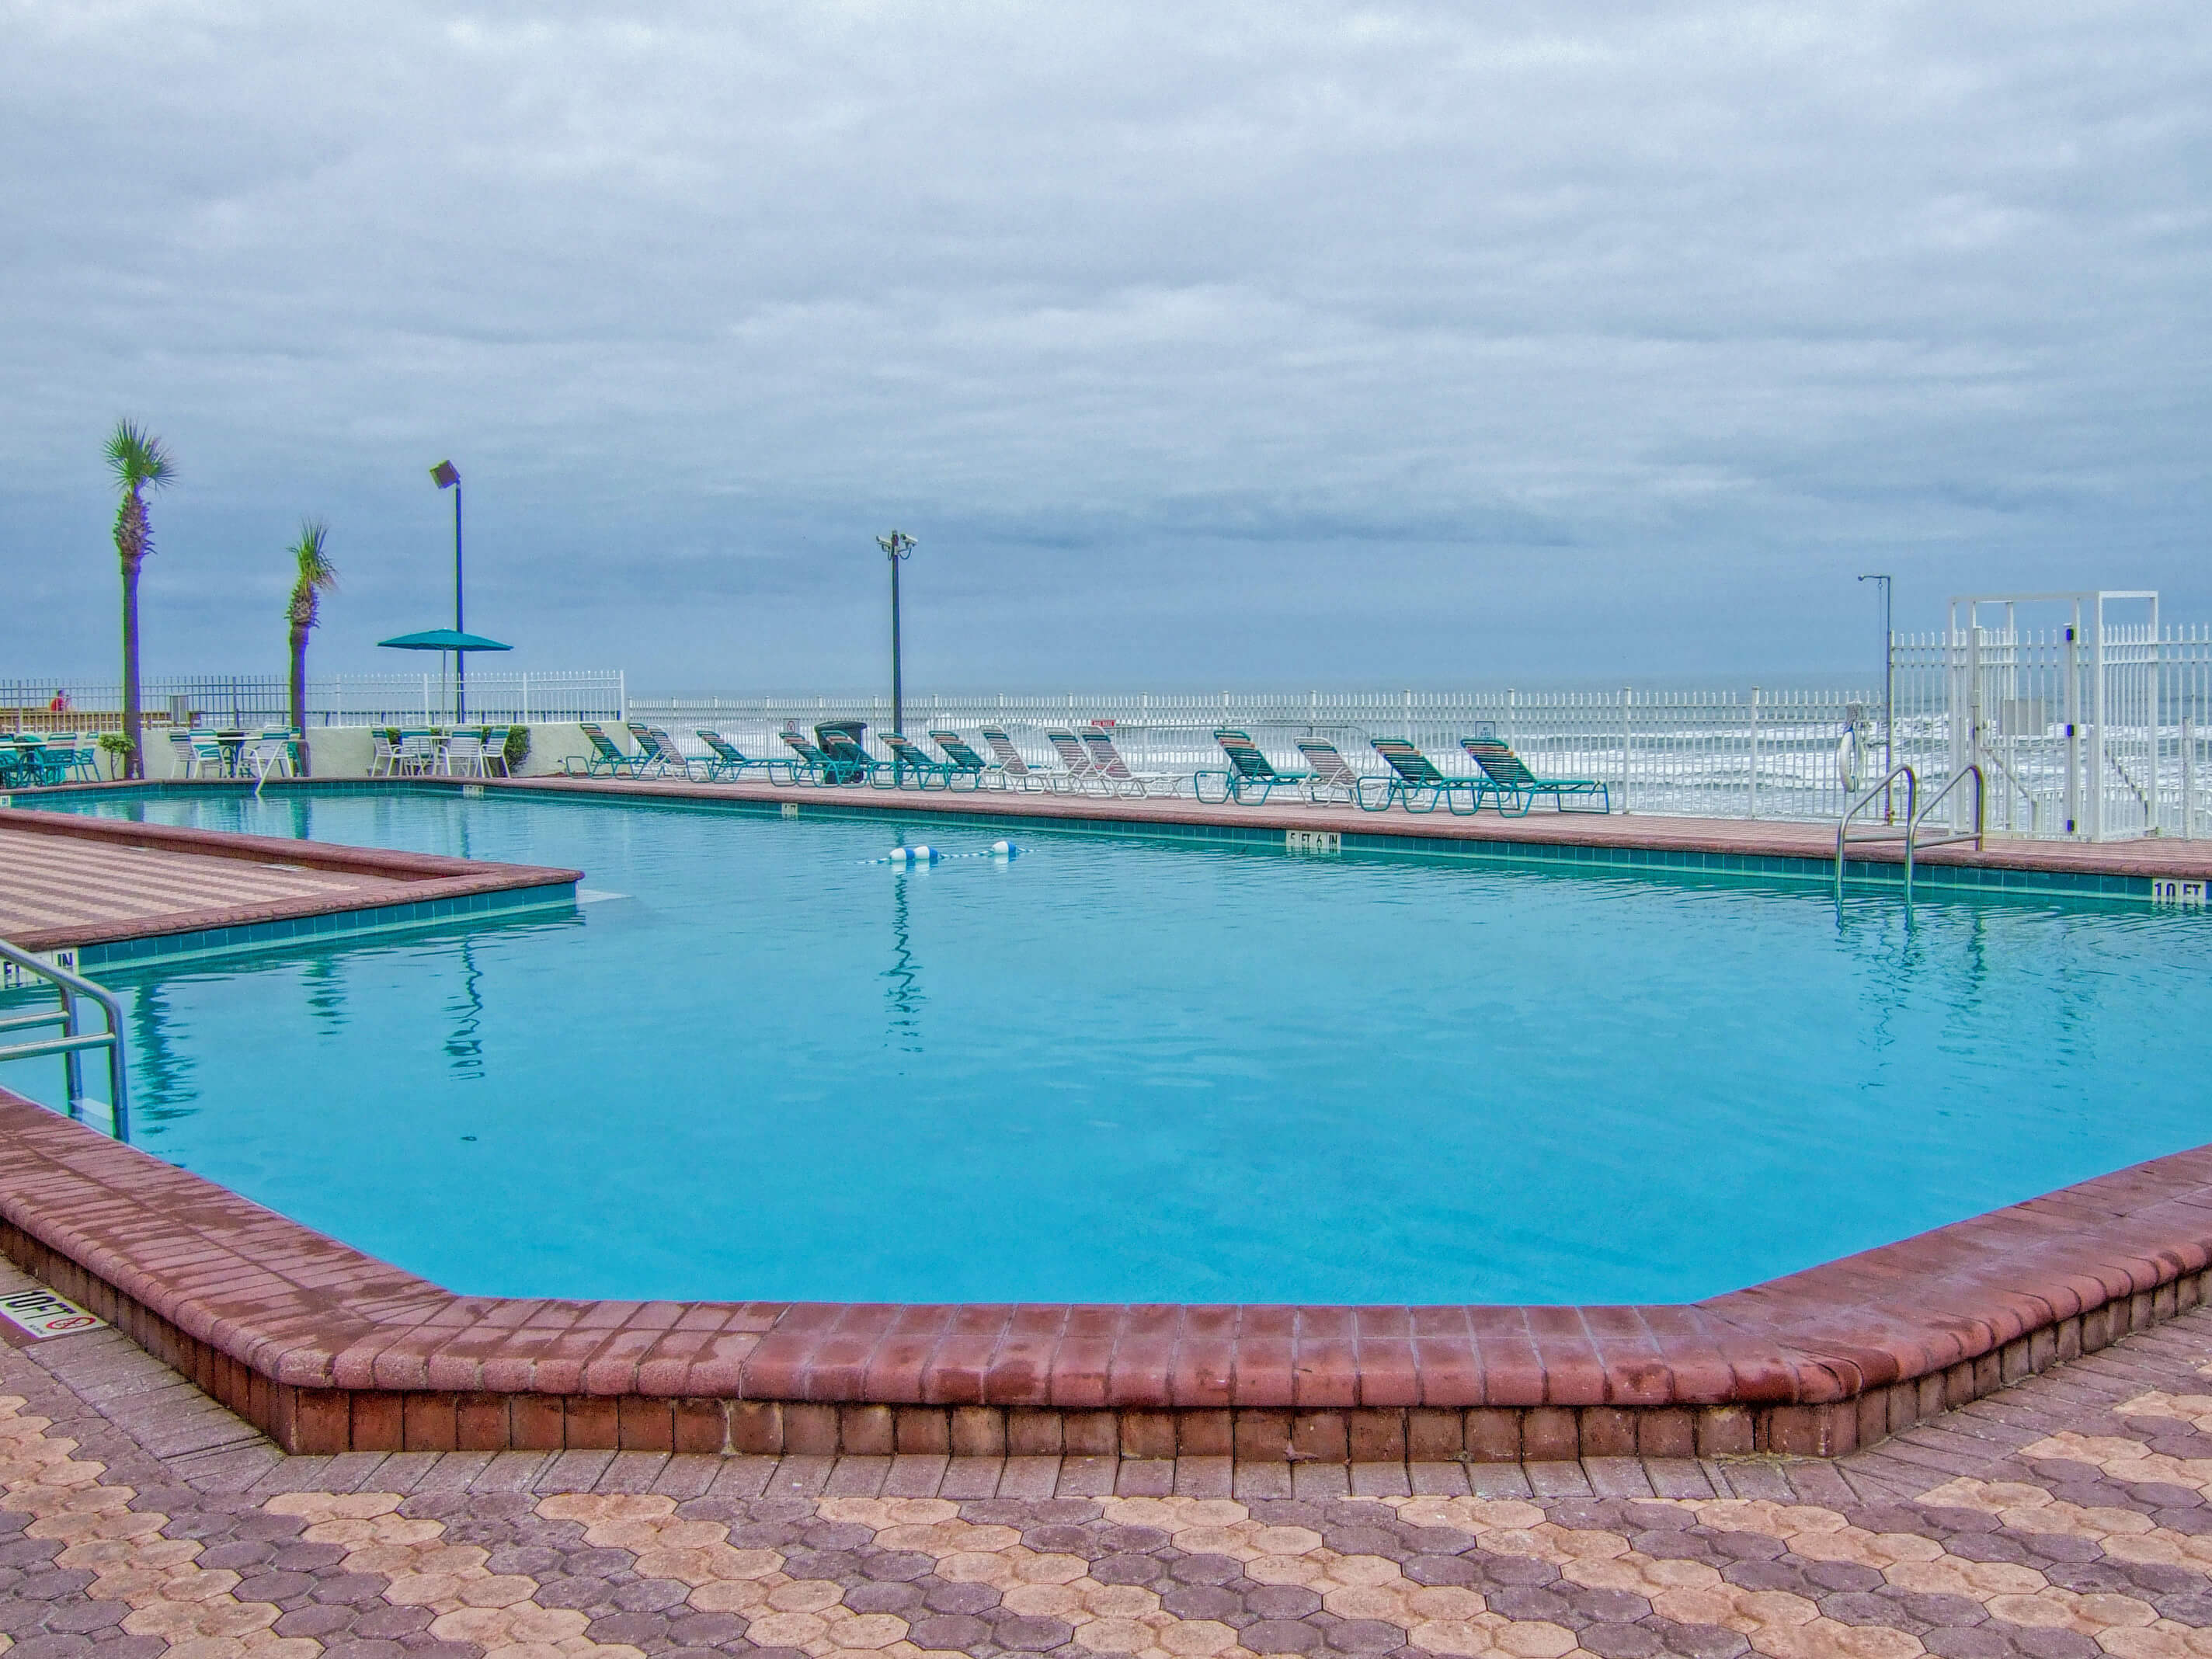 Large heated outdoor pool with lounge chairs | Harbour Beach Resort | Westgate Resorts in Daytona Beach FL